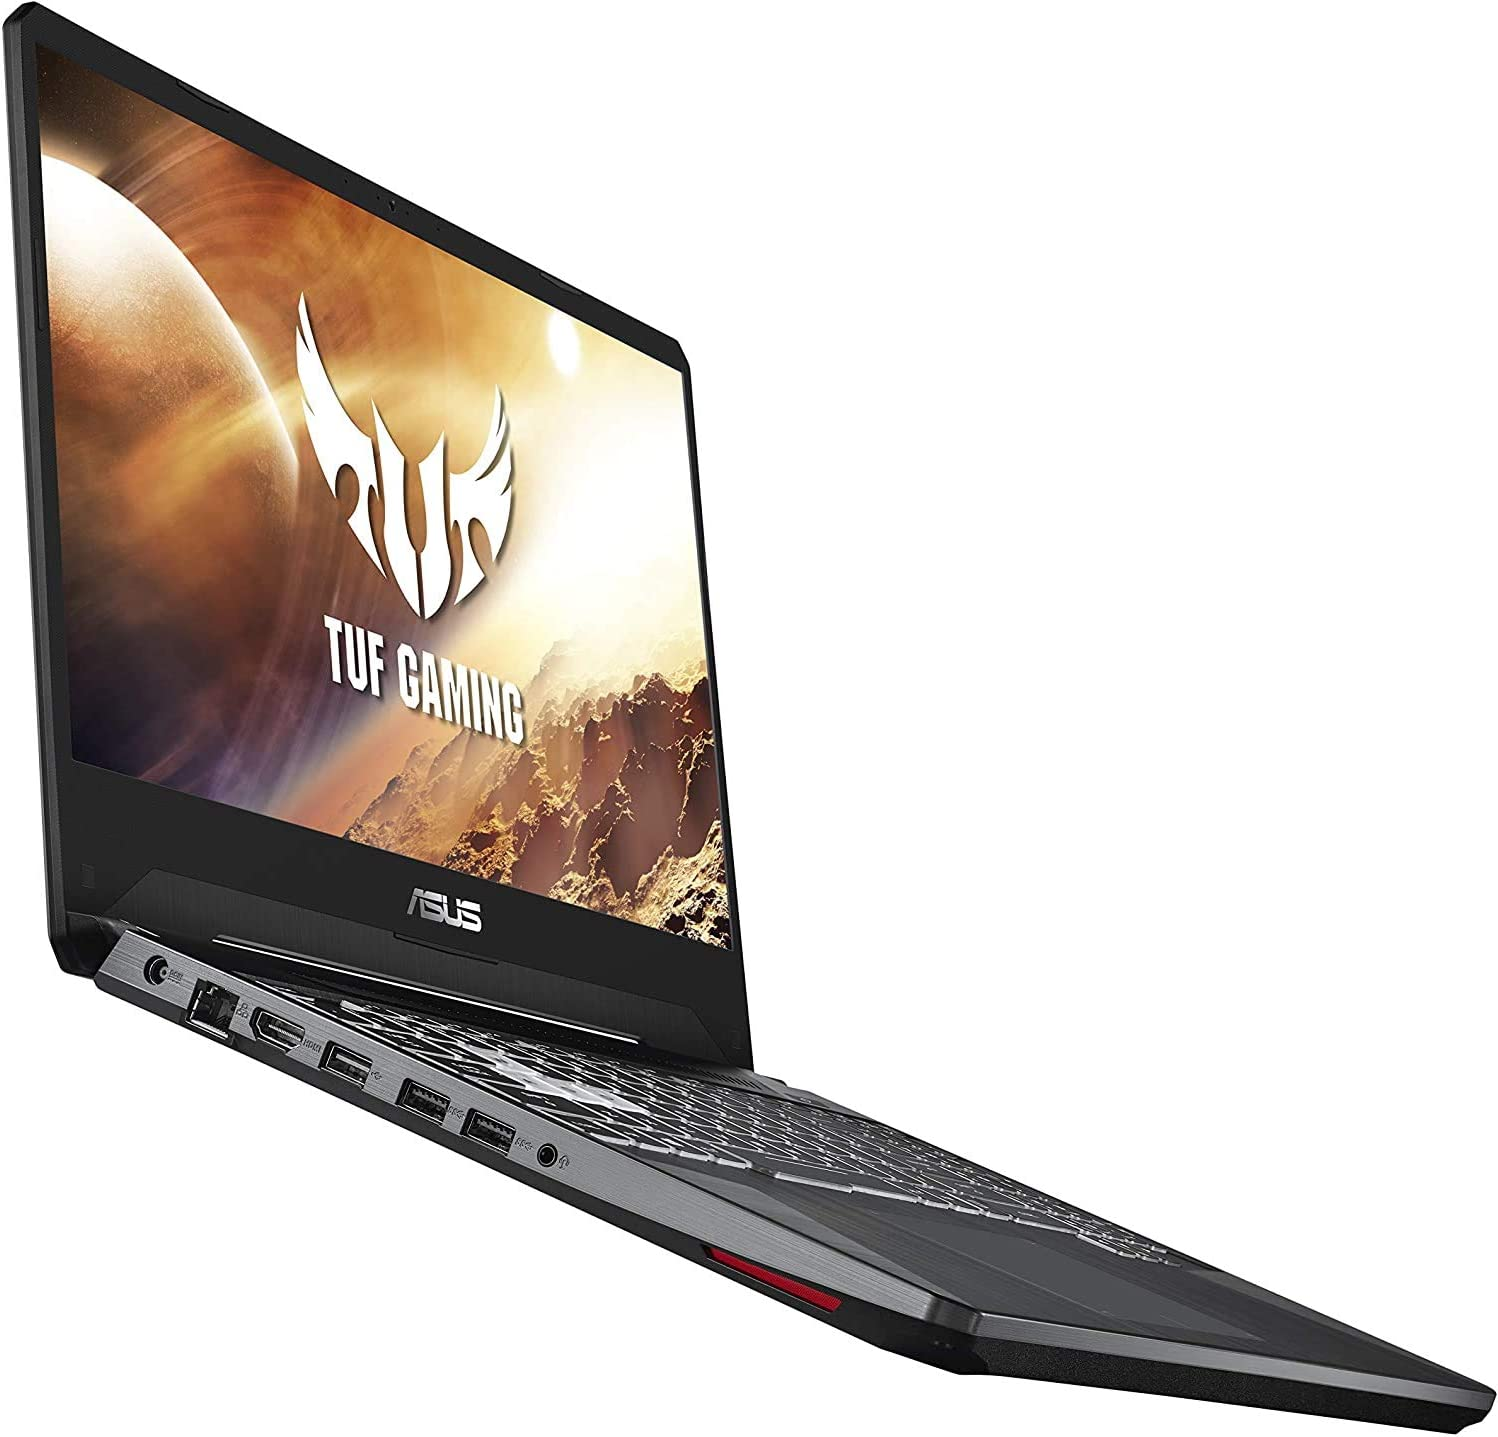 Asus TUF 15.6-inch FHD Gaming Laptop, AMD Quad Core Ryzen 5 3550H Processor, Nvidia Geforce GTX 1650 4GB Graphics, 8GB DDR4 RAM, 256GB Solid State Drive, RGB Backlit Keyboard, Windows 10 Home, Black